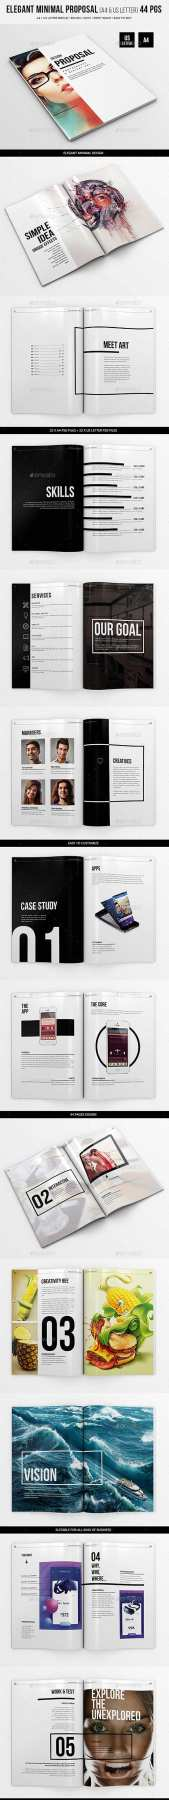 Graphicriver - Elegant Minimal Proposal - 44 pgs - A4 and US Letter 20076300